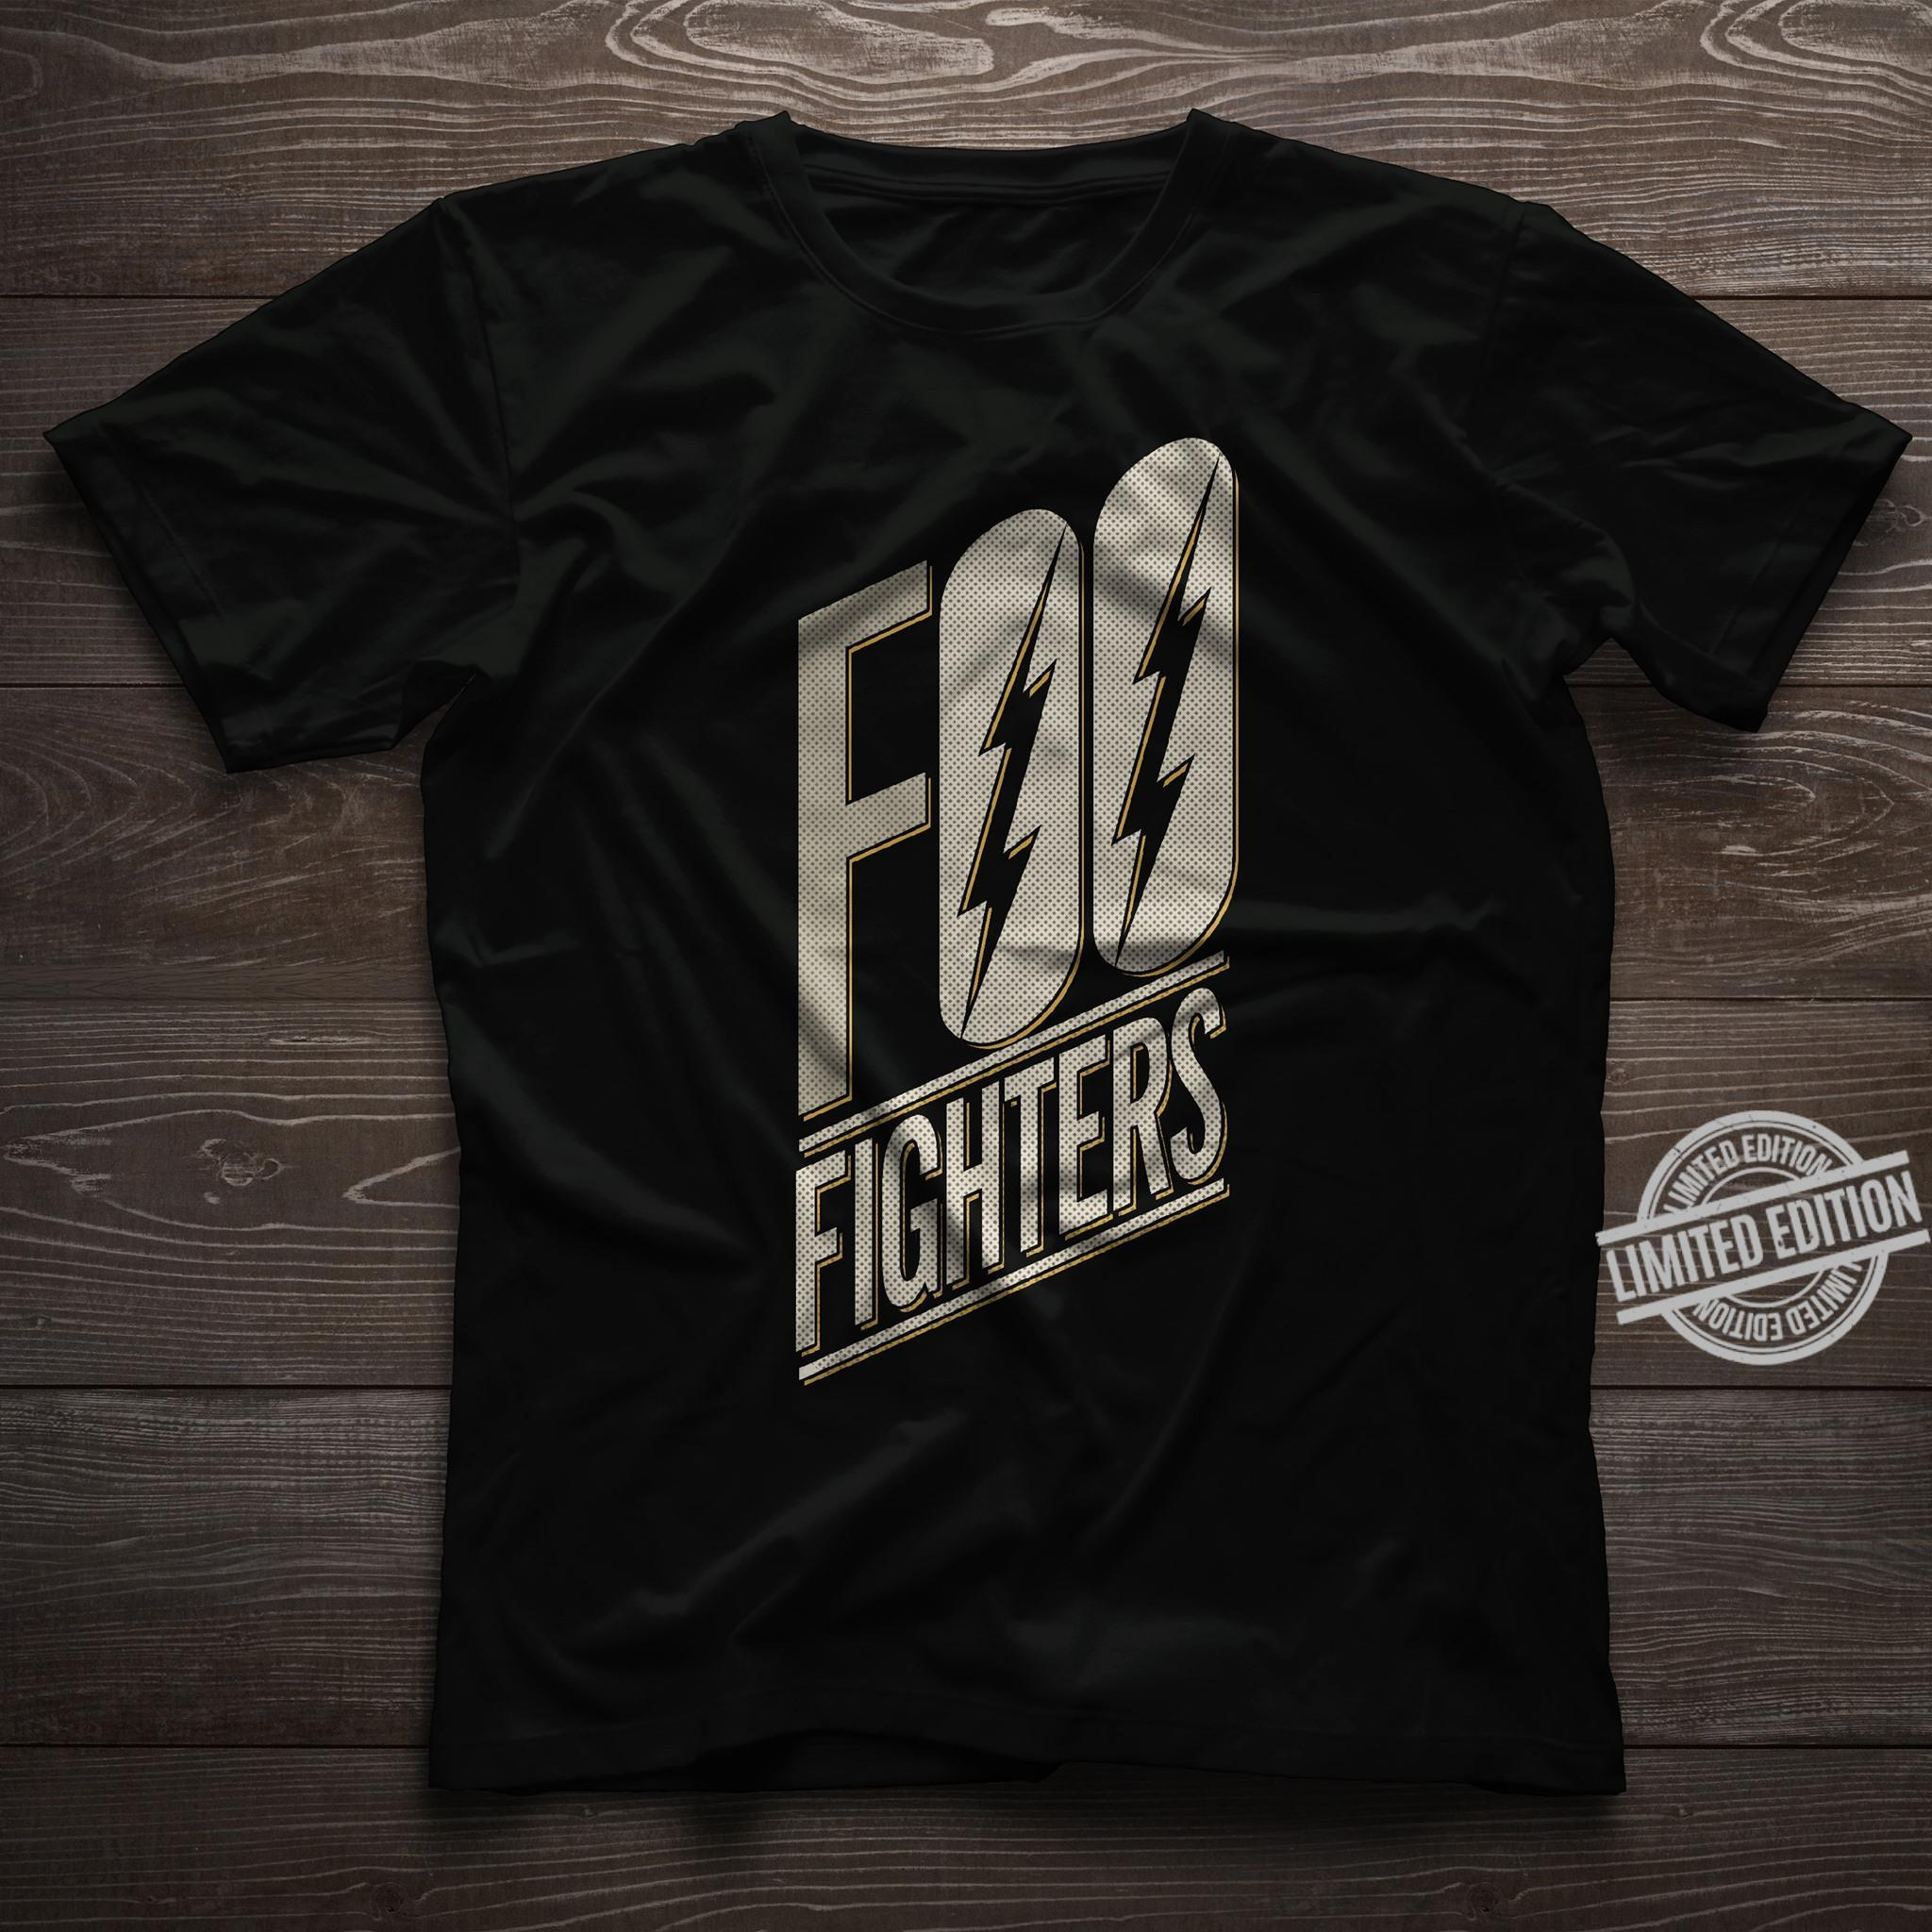 F00 Fighters Shirt